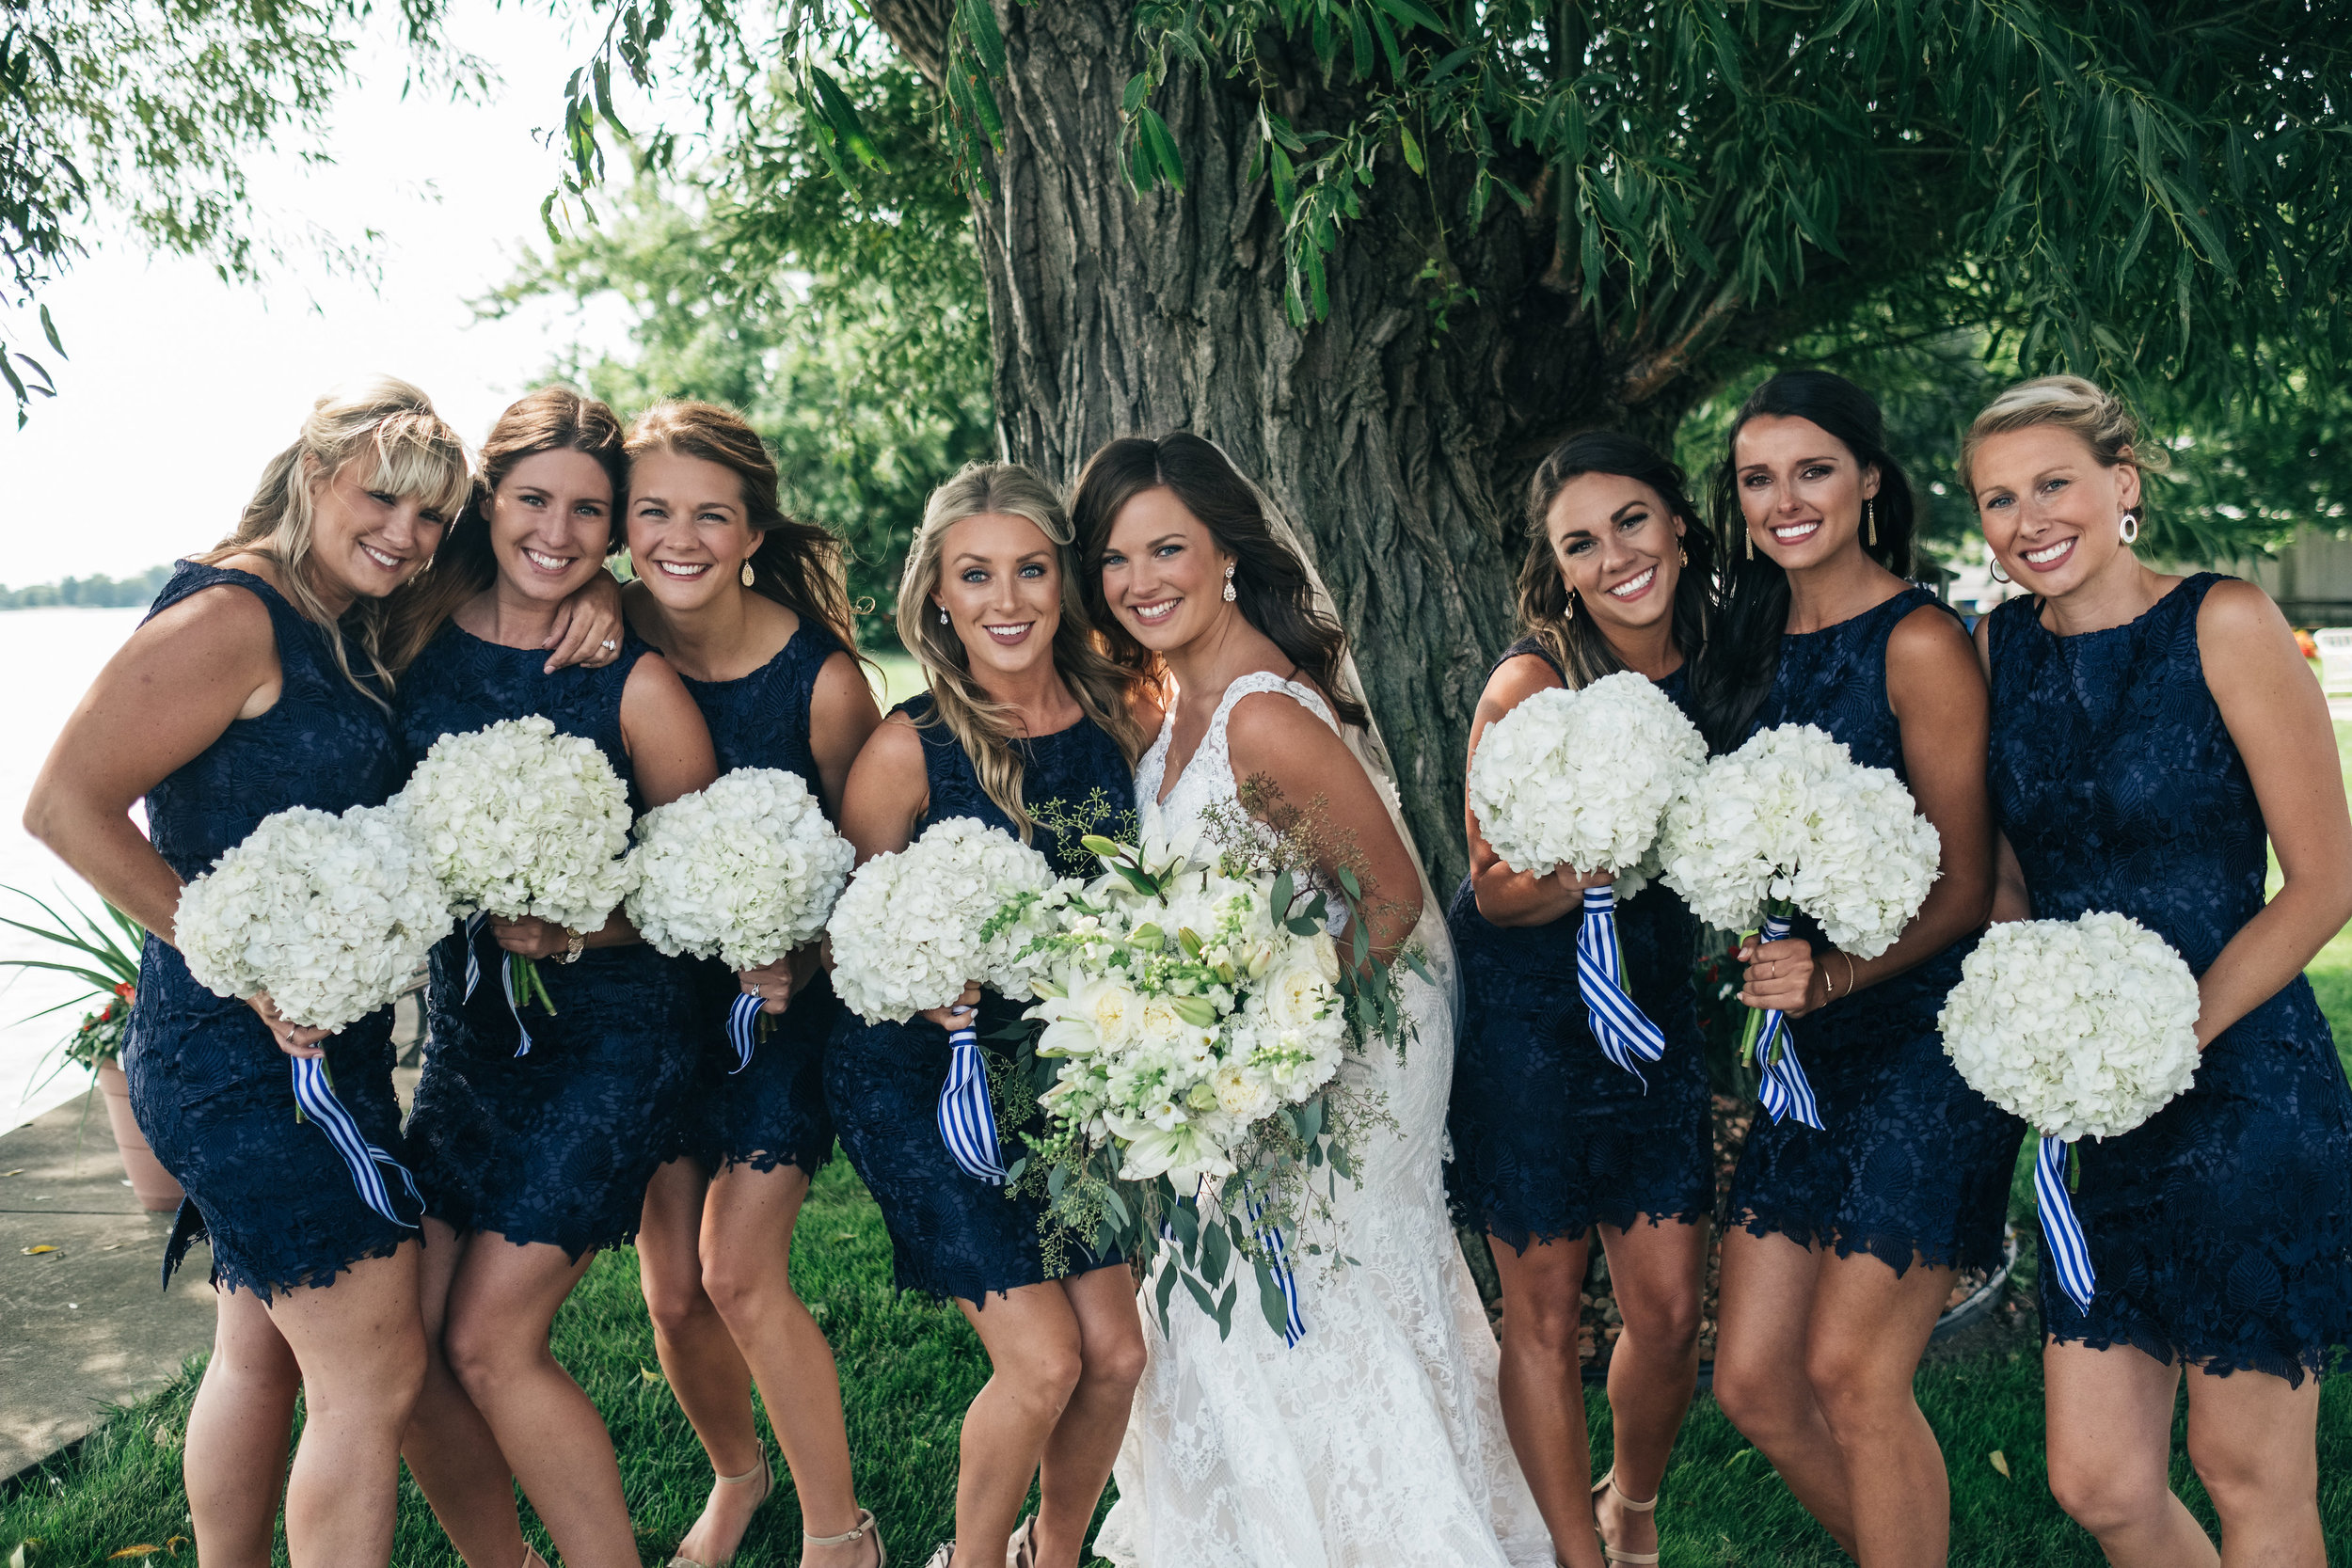 Bridesmaids Stand Outdoors for Bridal Party Photos